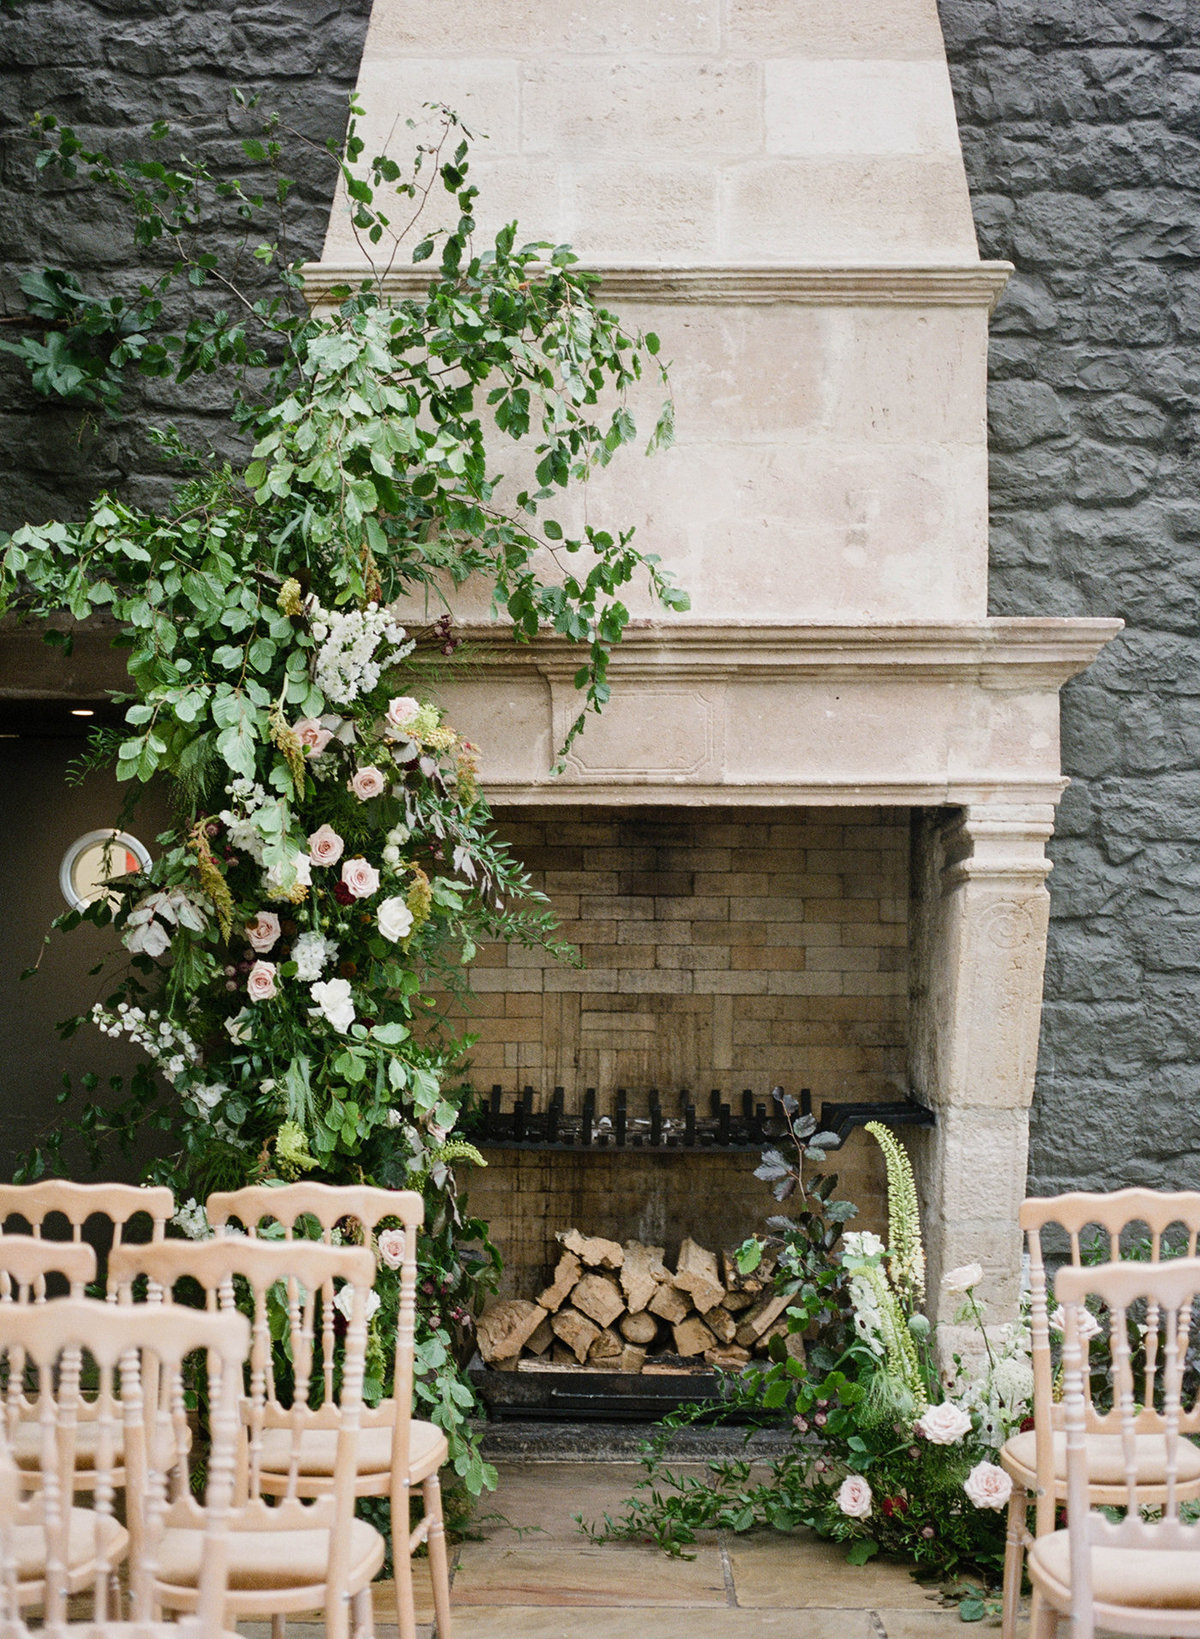 Destination Wedding Photographer - Ireland Editorial - Cliff at Lyons Kildare Ireland - Sarah Sunstrom Photography - 31